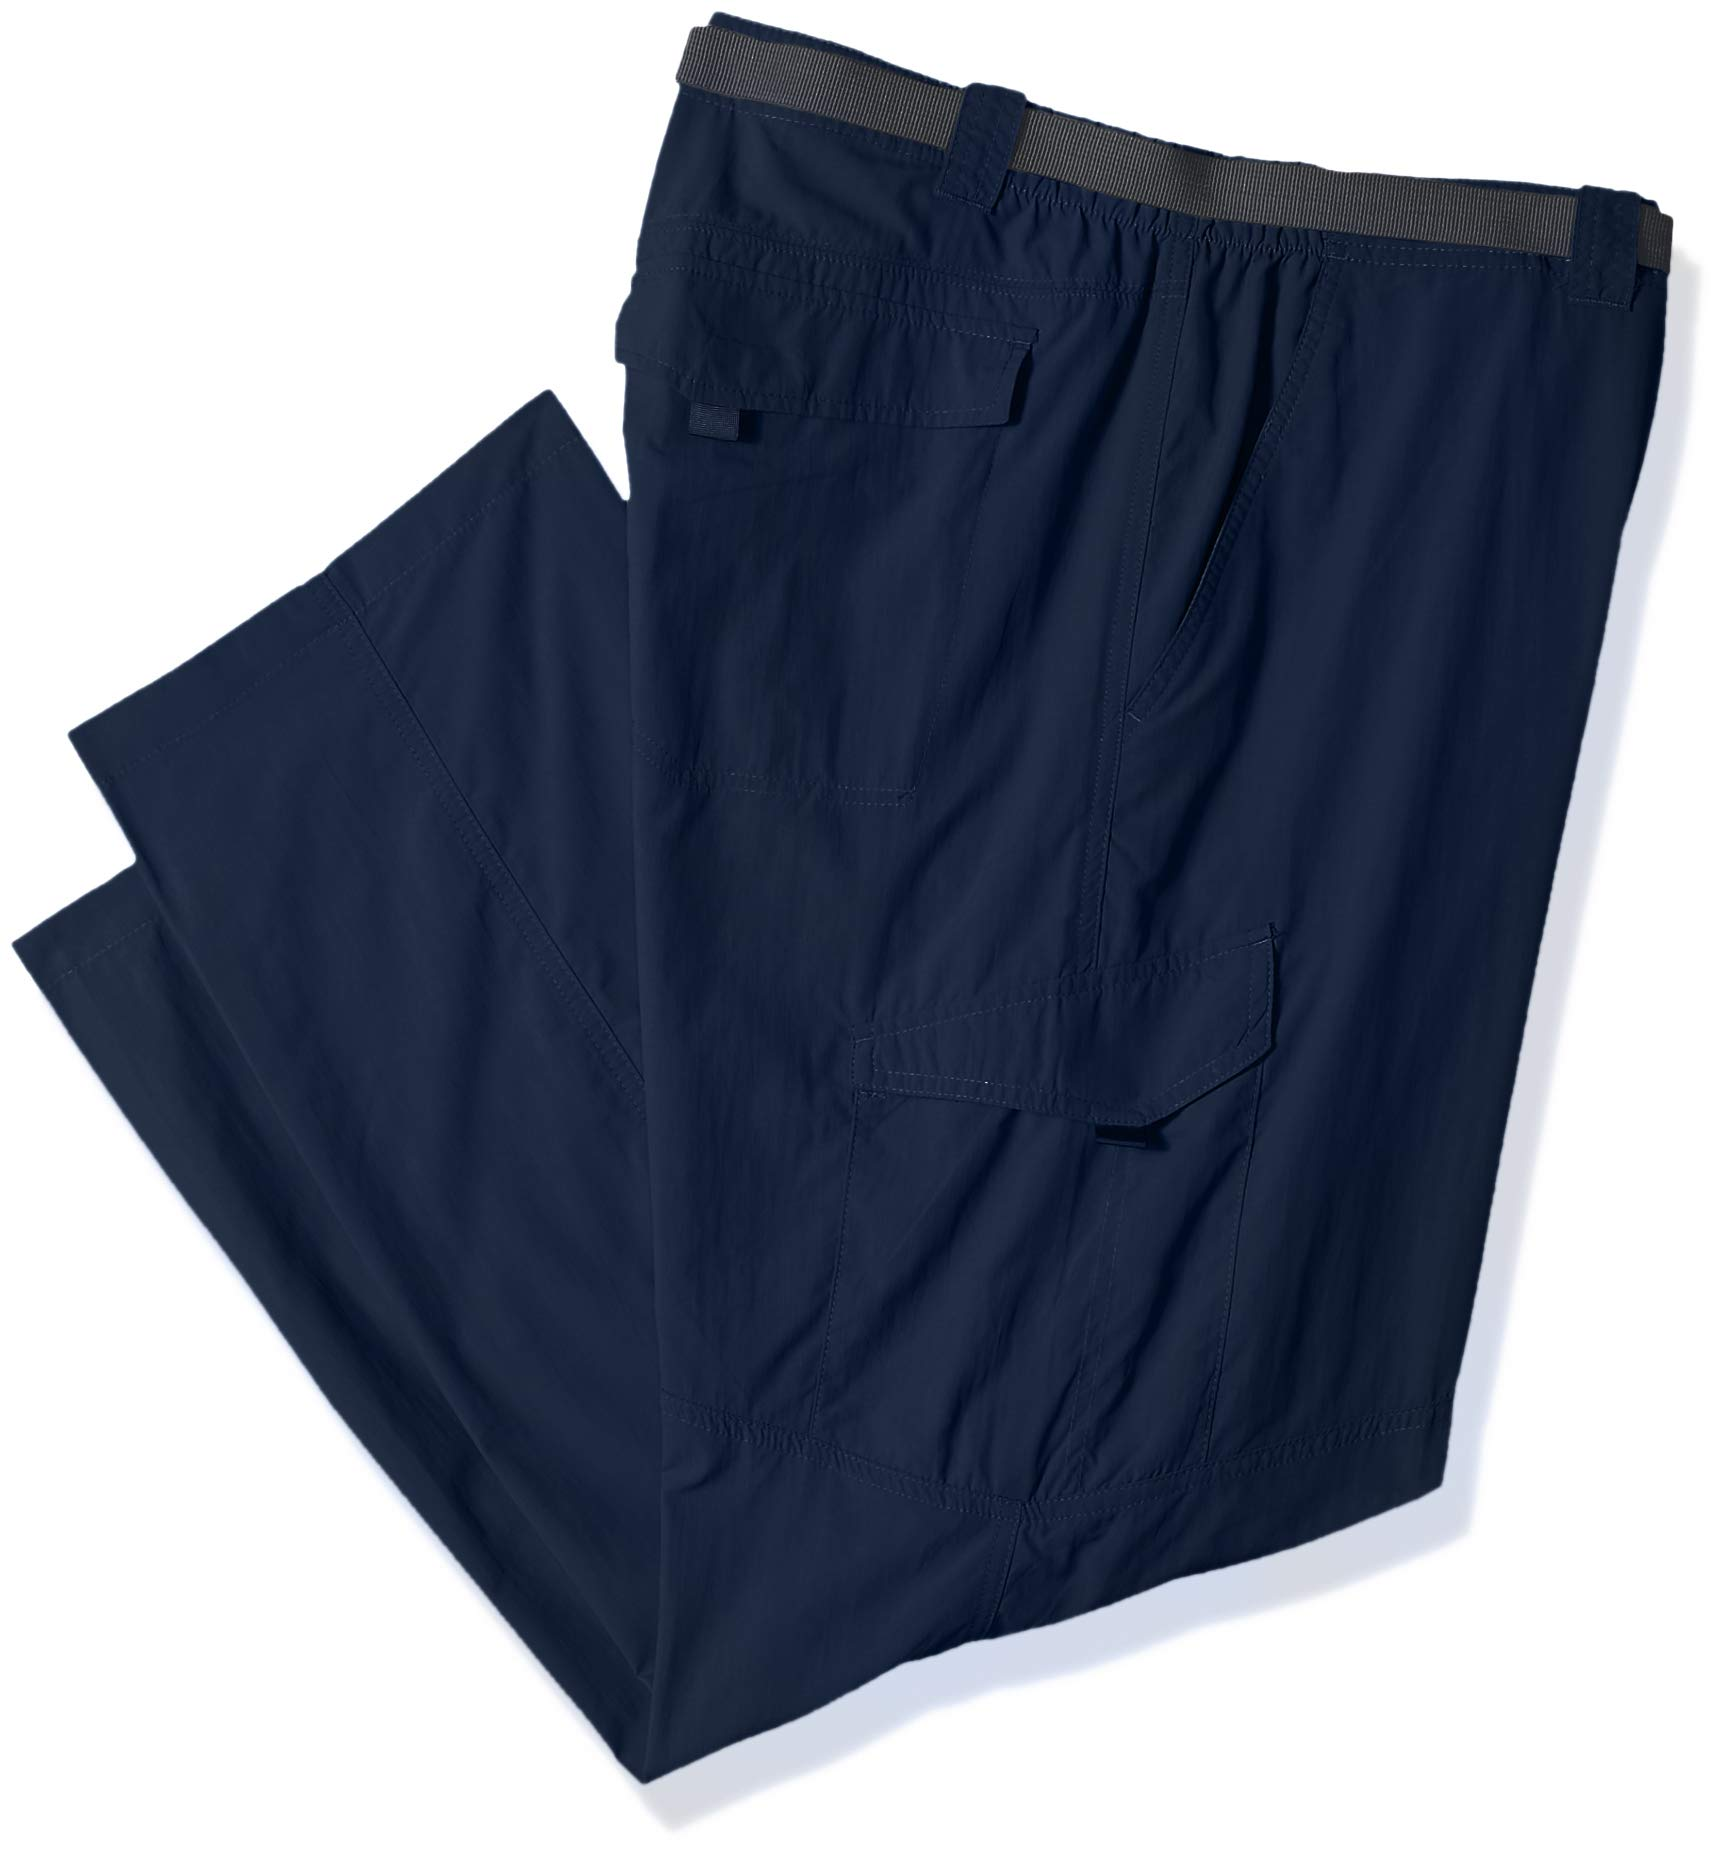 Columbia Men's Silver Ridge Cargo Pant, Collegiate Navy, 30x30